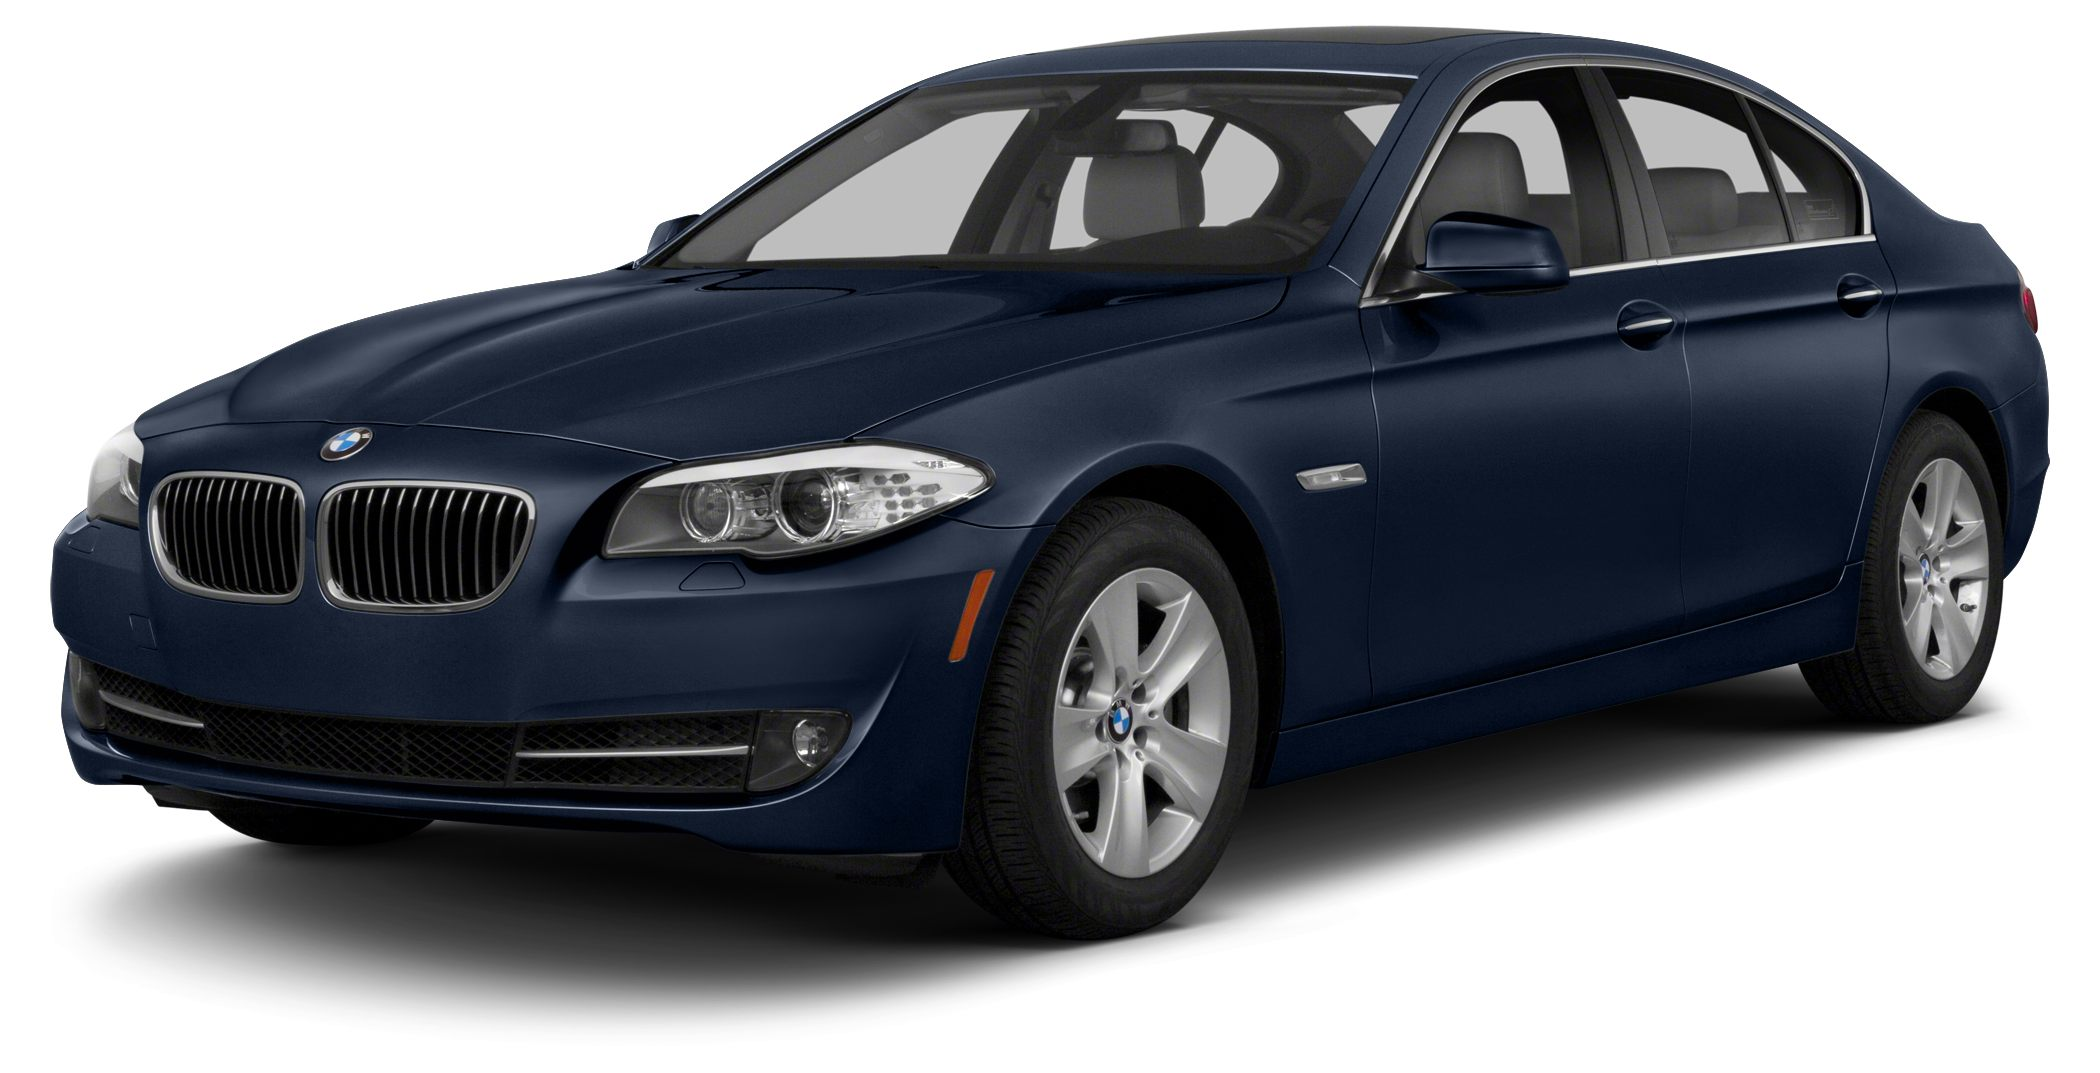 2013 BMW 5 Series 535i xDrive 1 OWNER  CLEAN CARFAX REPORT  All Wheel Drive